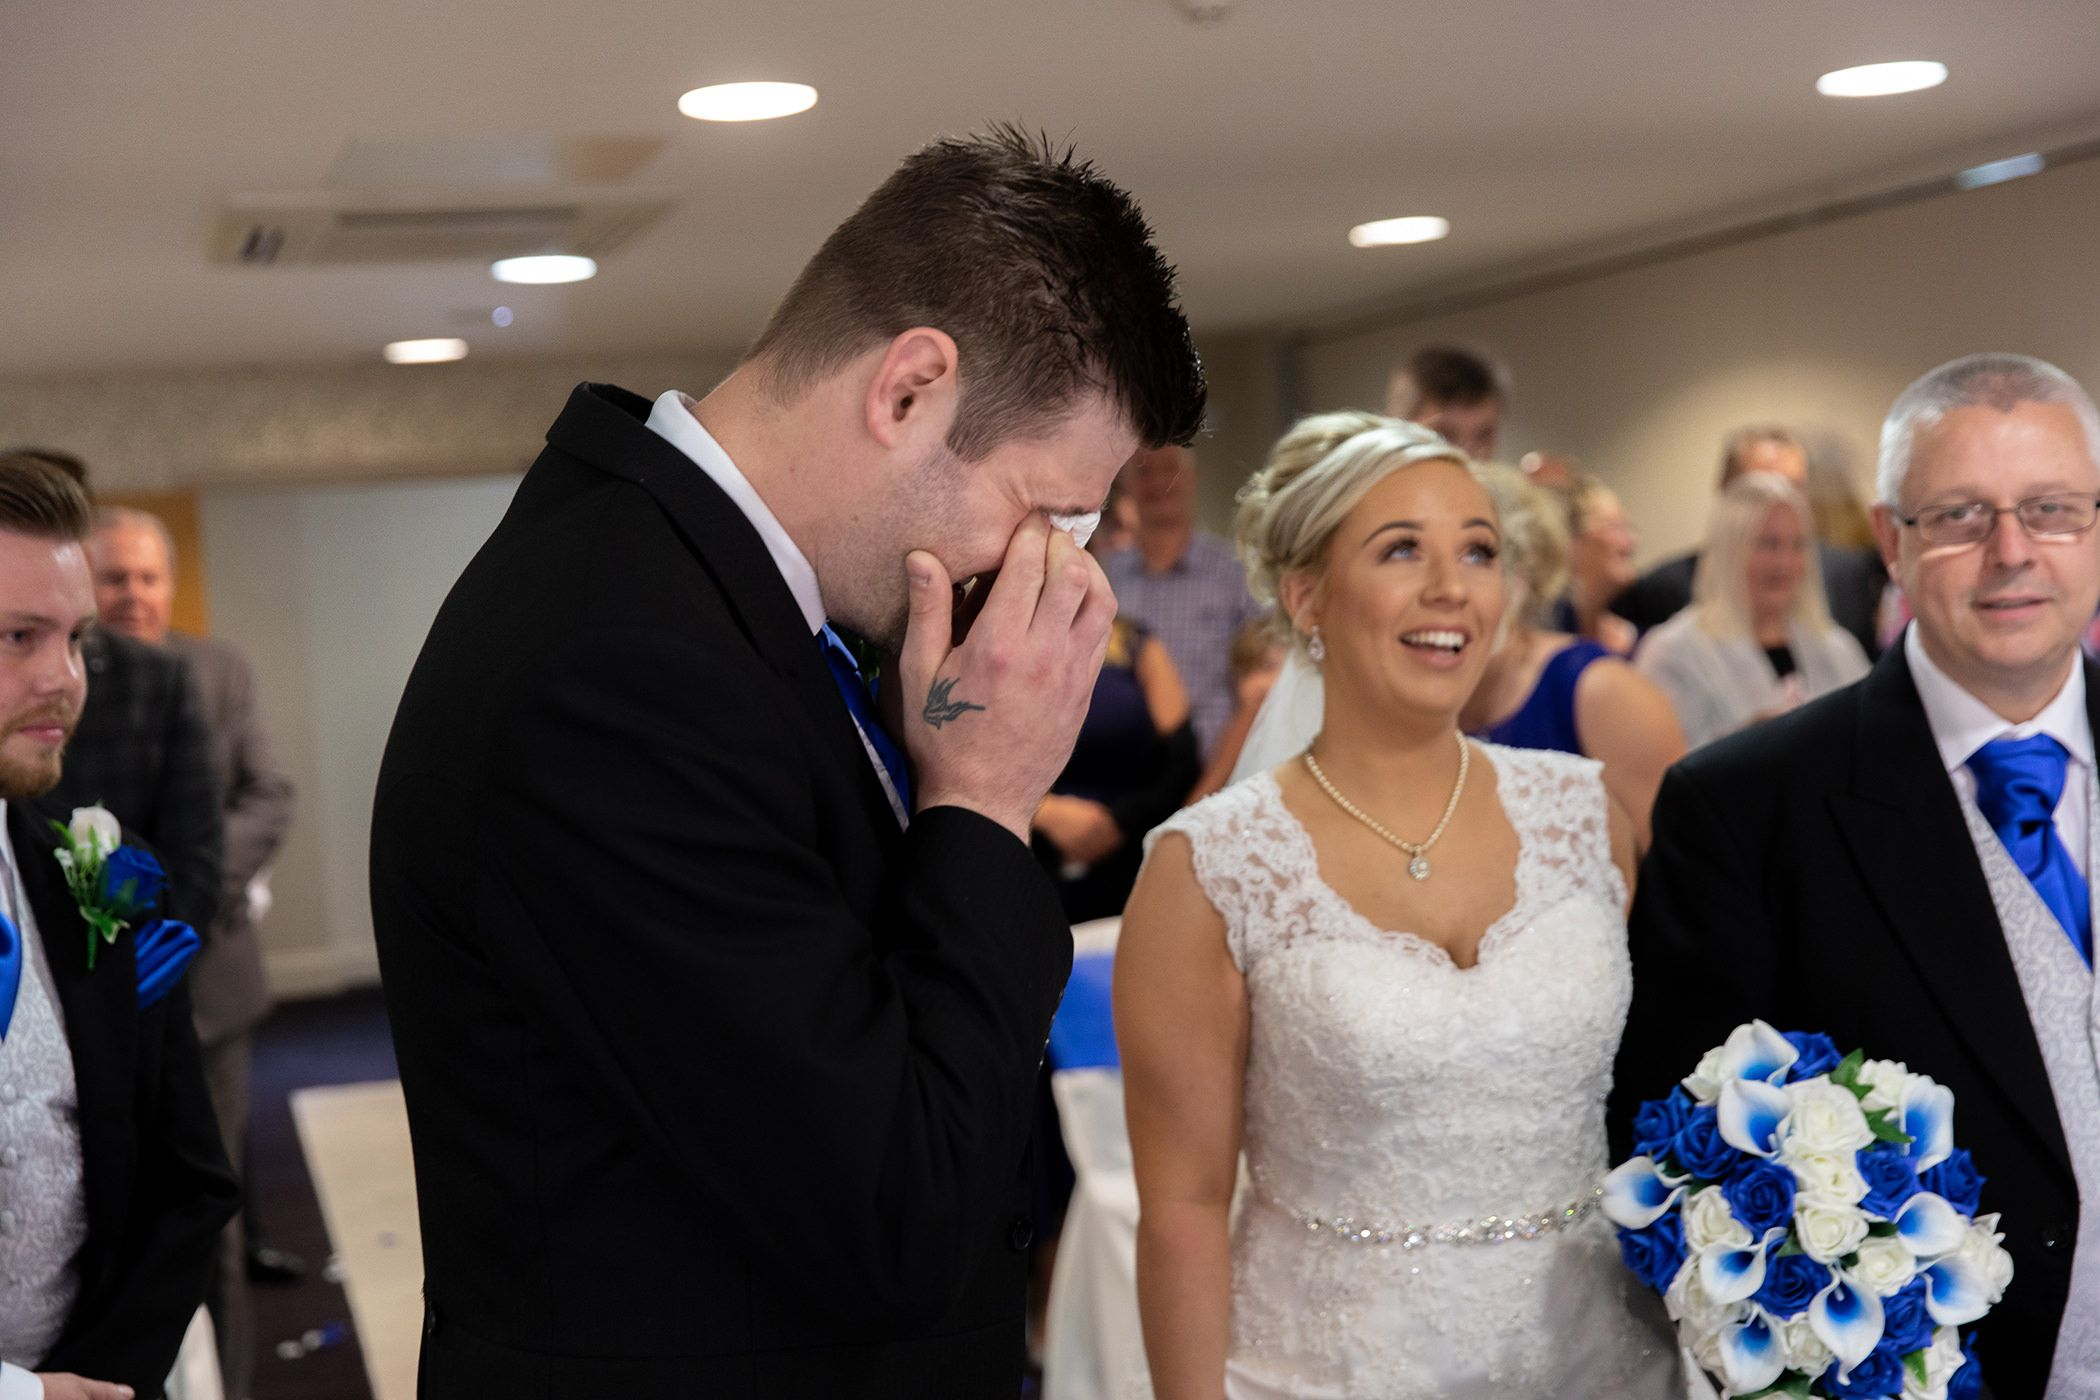 The groom cries as he sees his bride